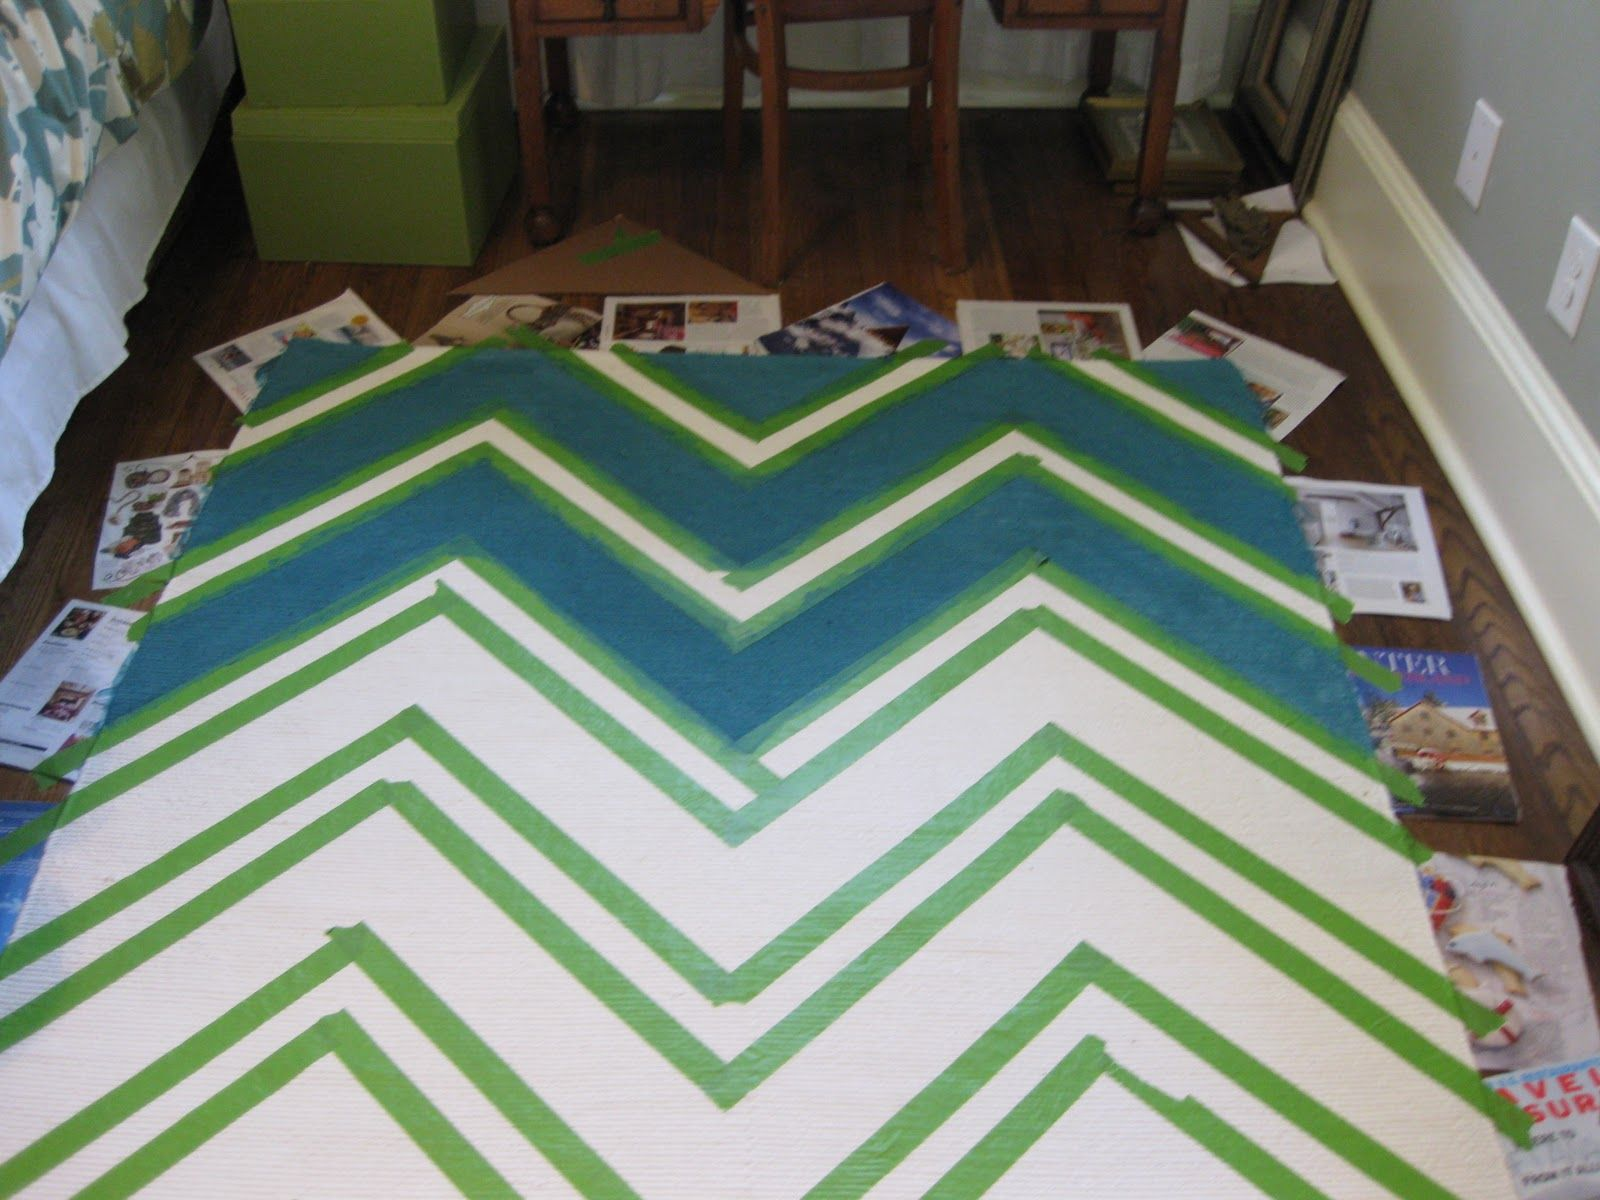 Chevron Patterned Rug The Colors Make Me Think Of Lauren Kenniston